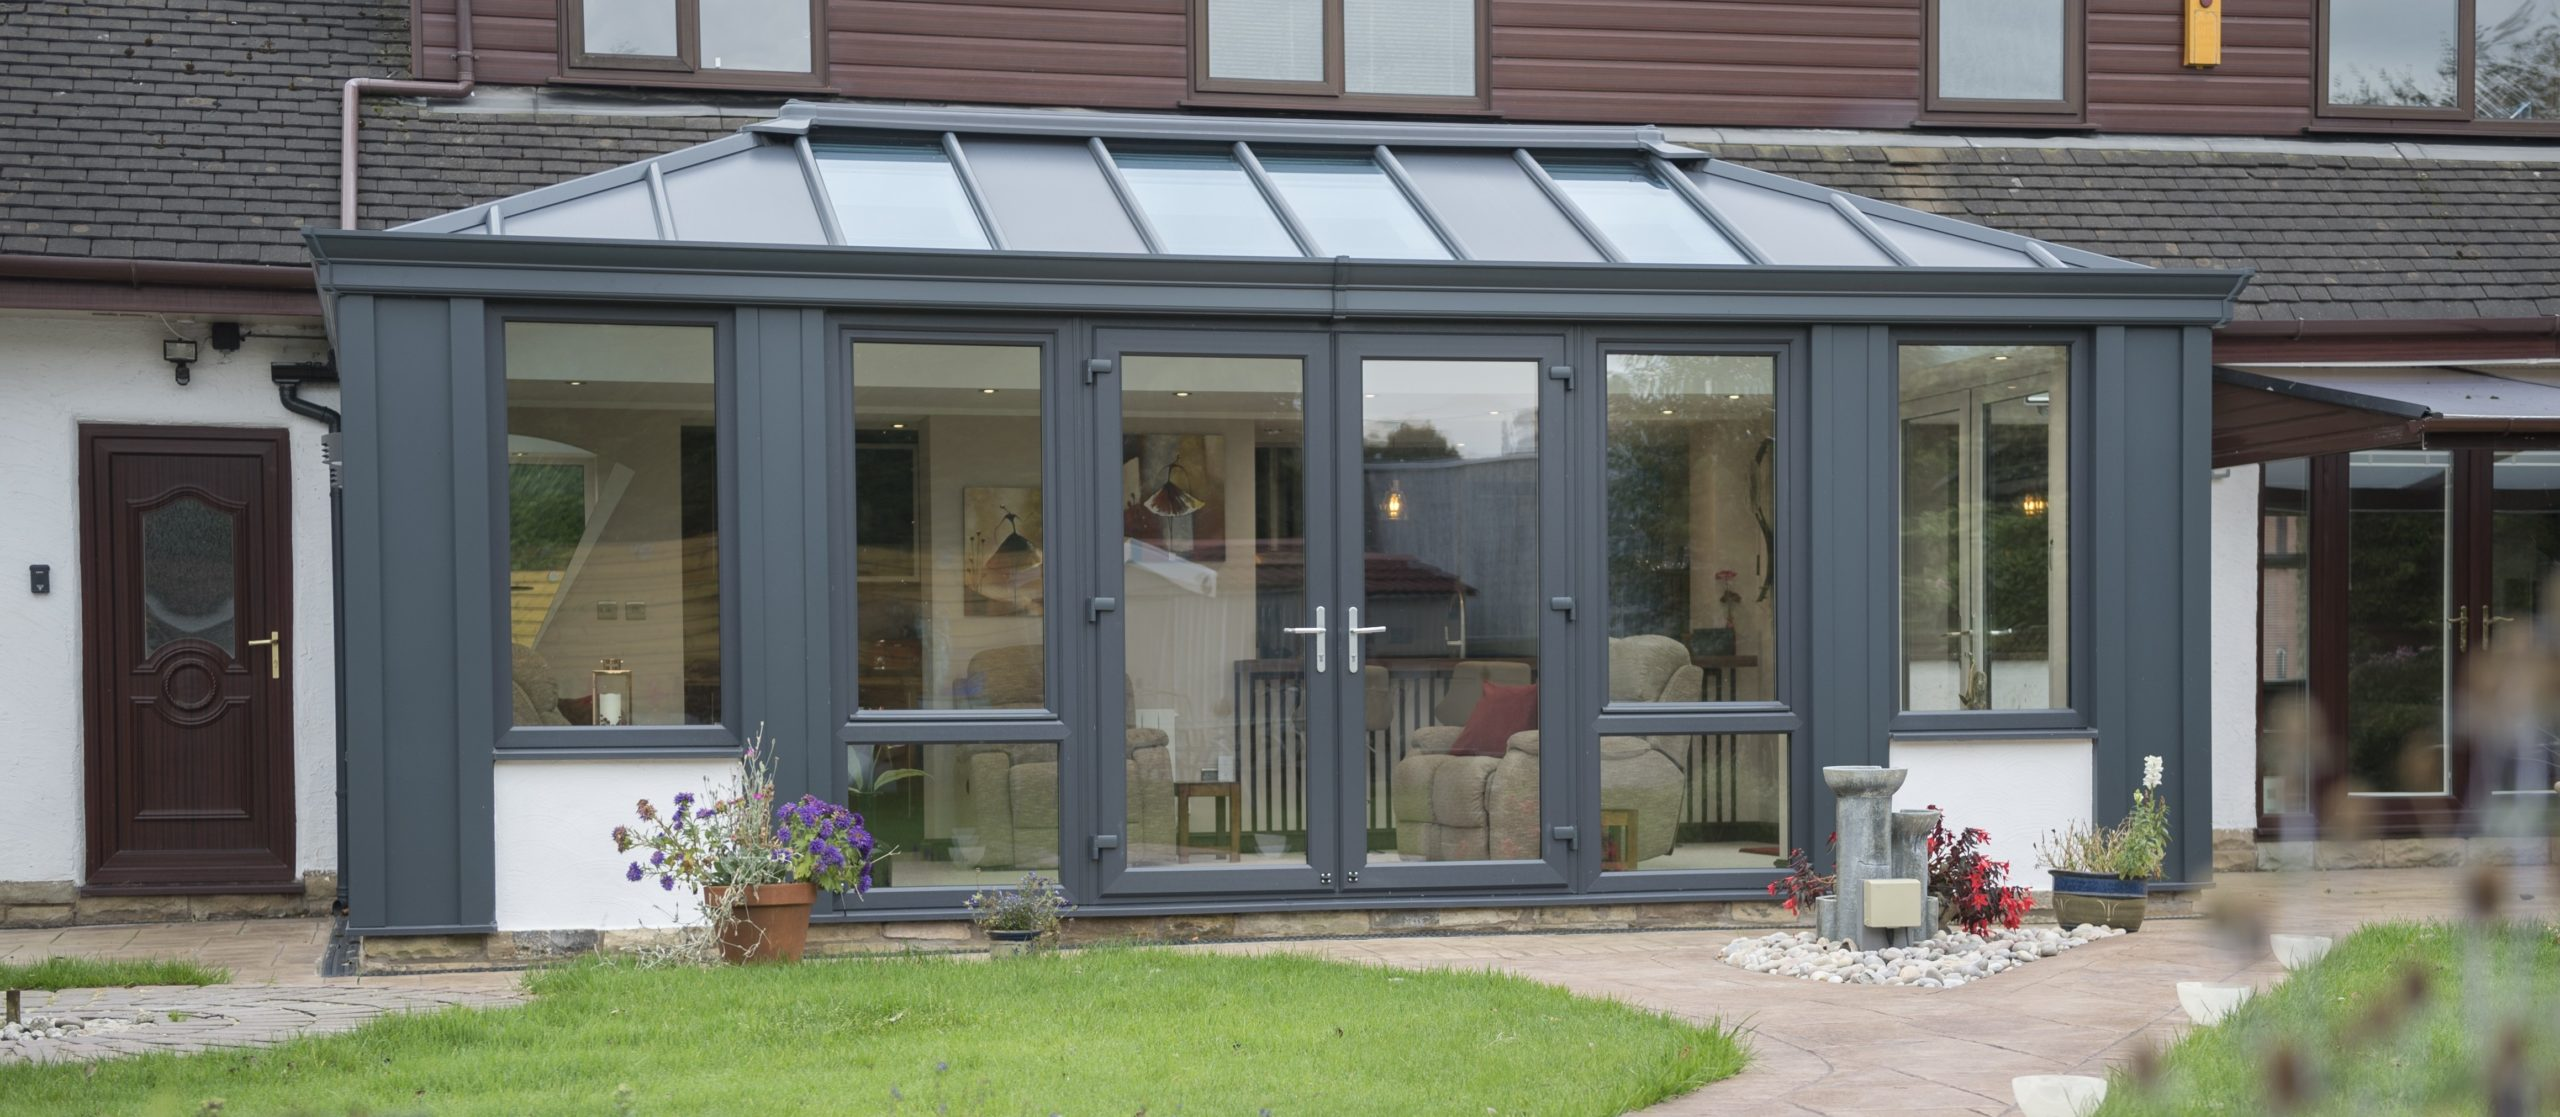 Conservatory Components for Trade